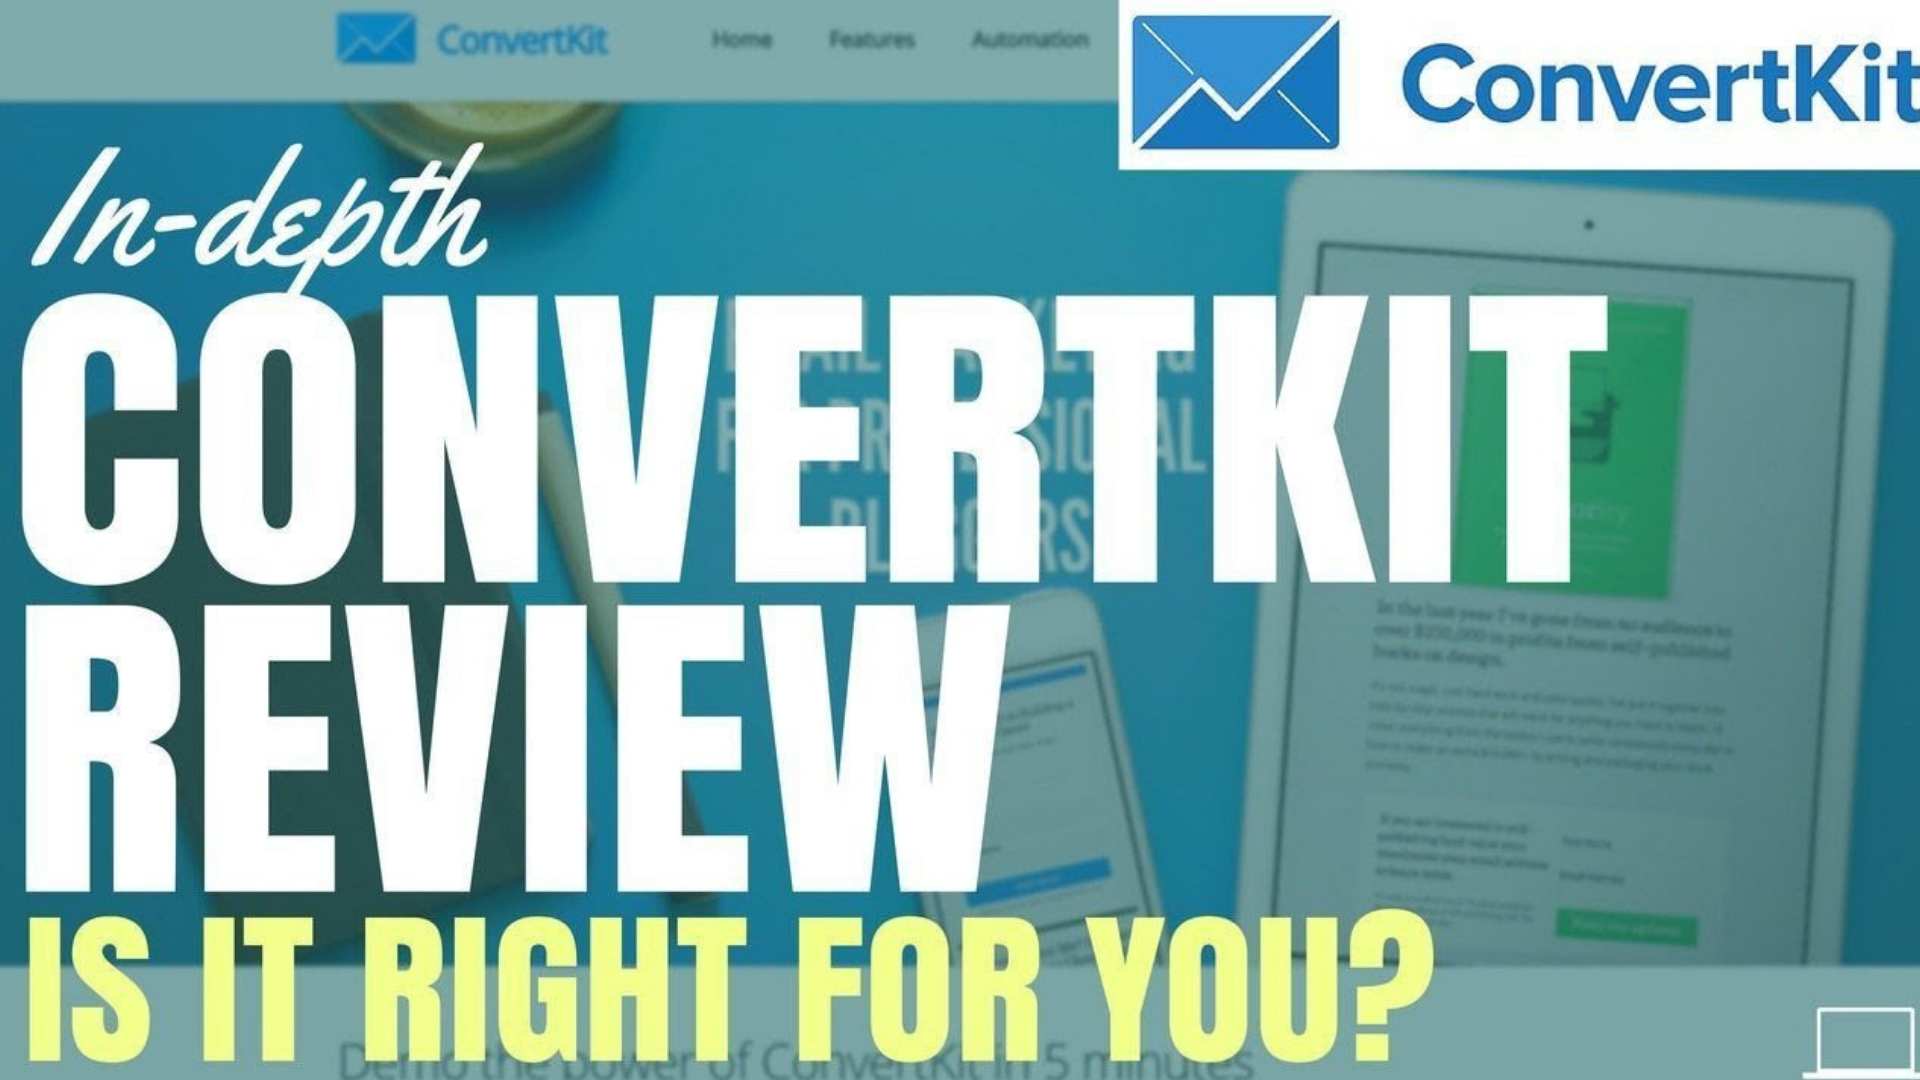 Convertkit Wiki, Review 2019 Pricing, Pros, Cons